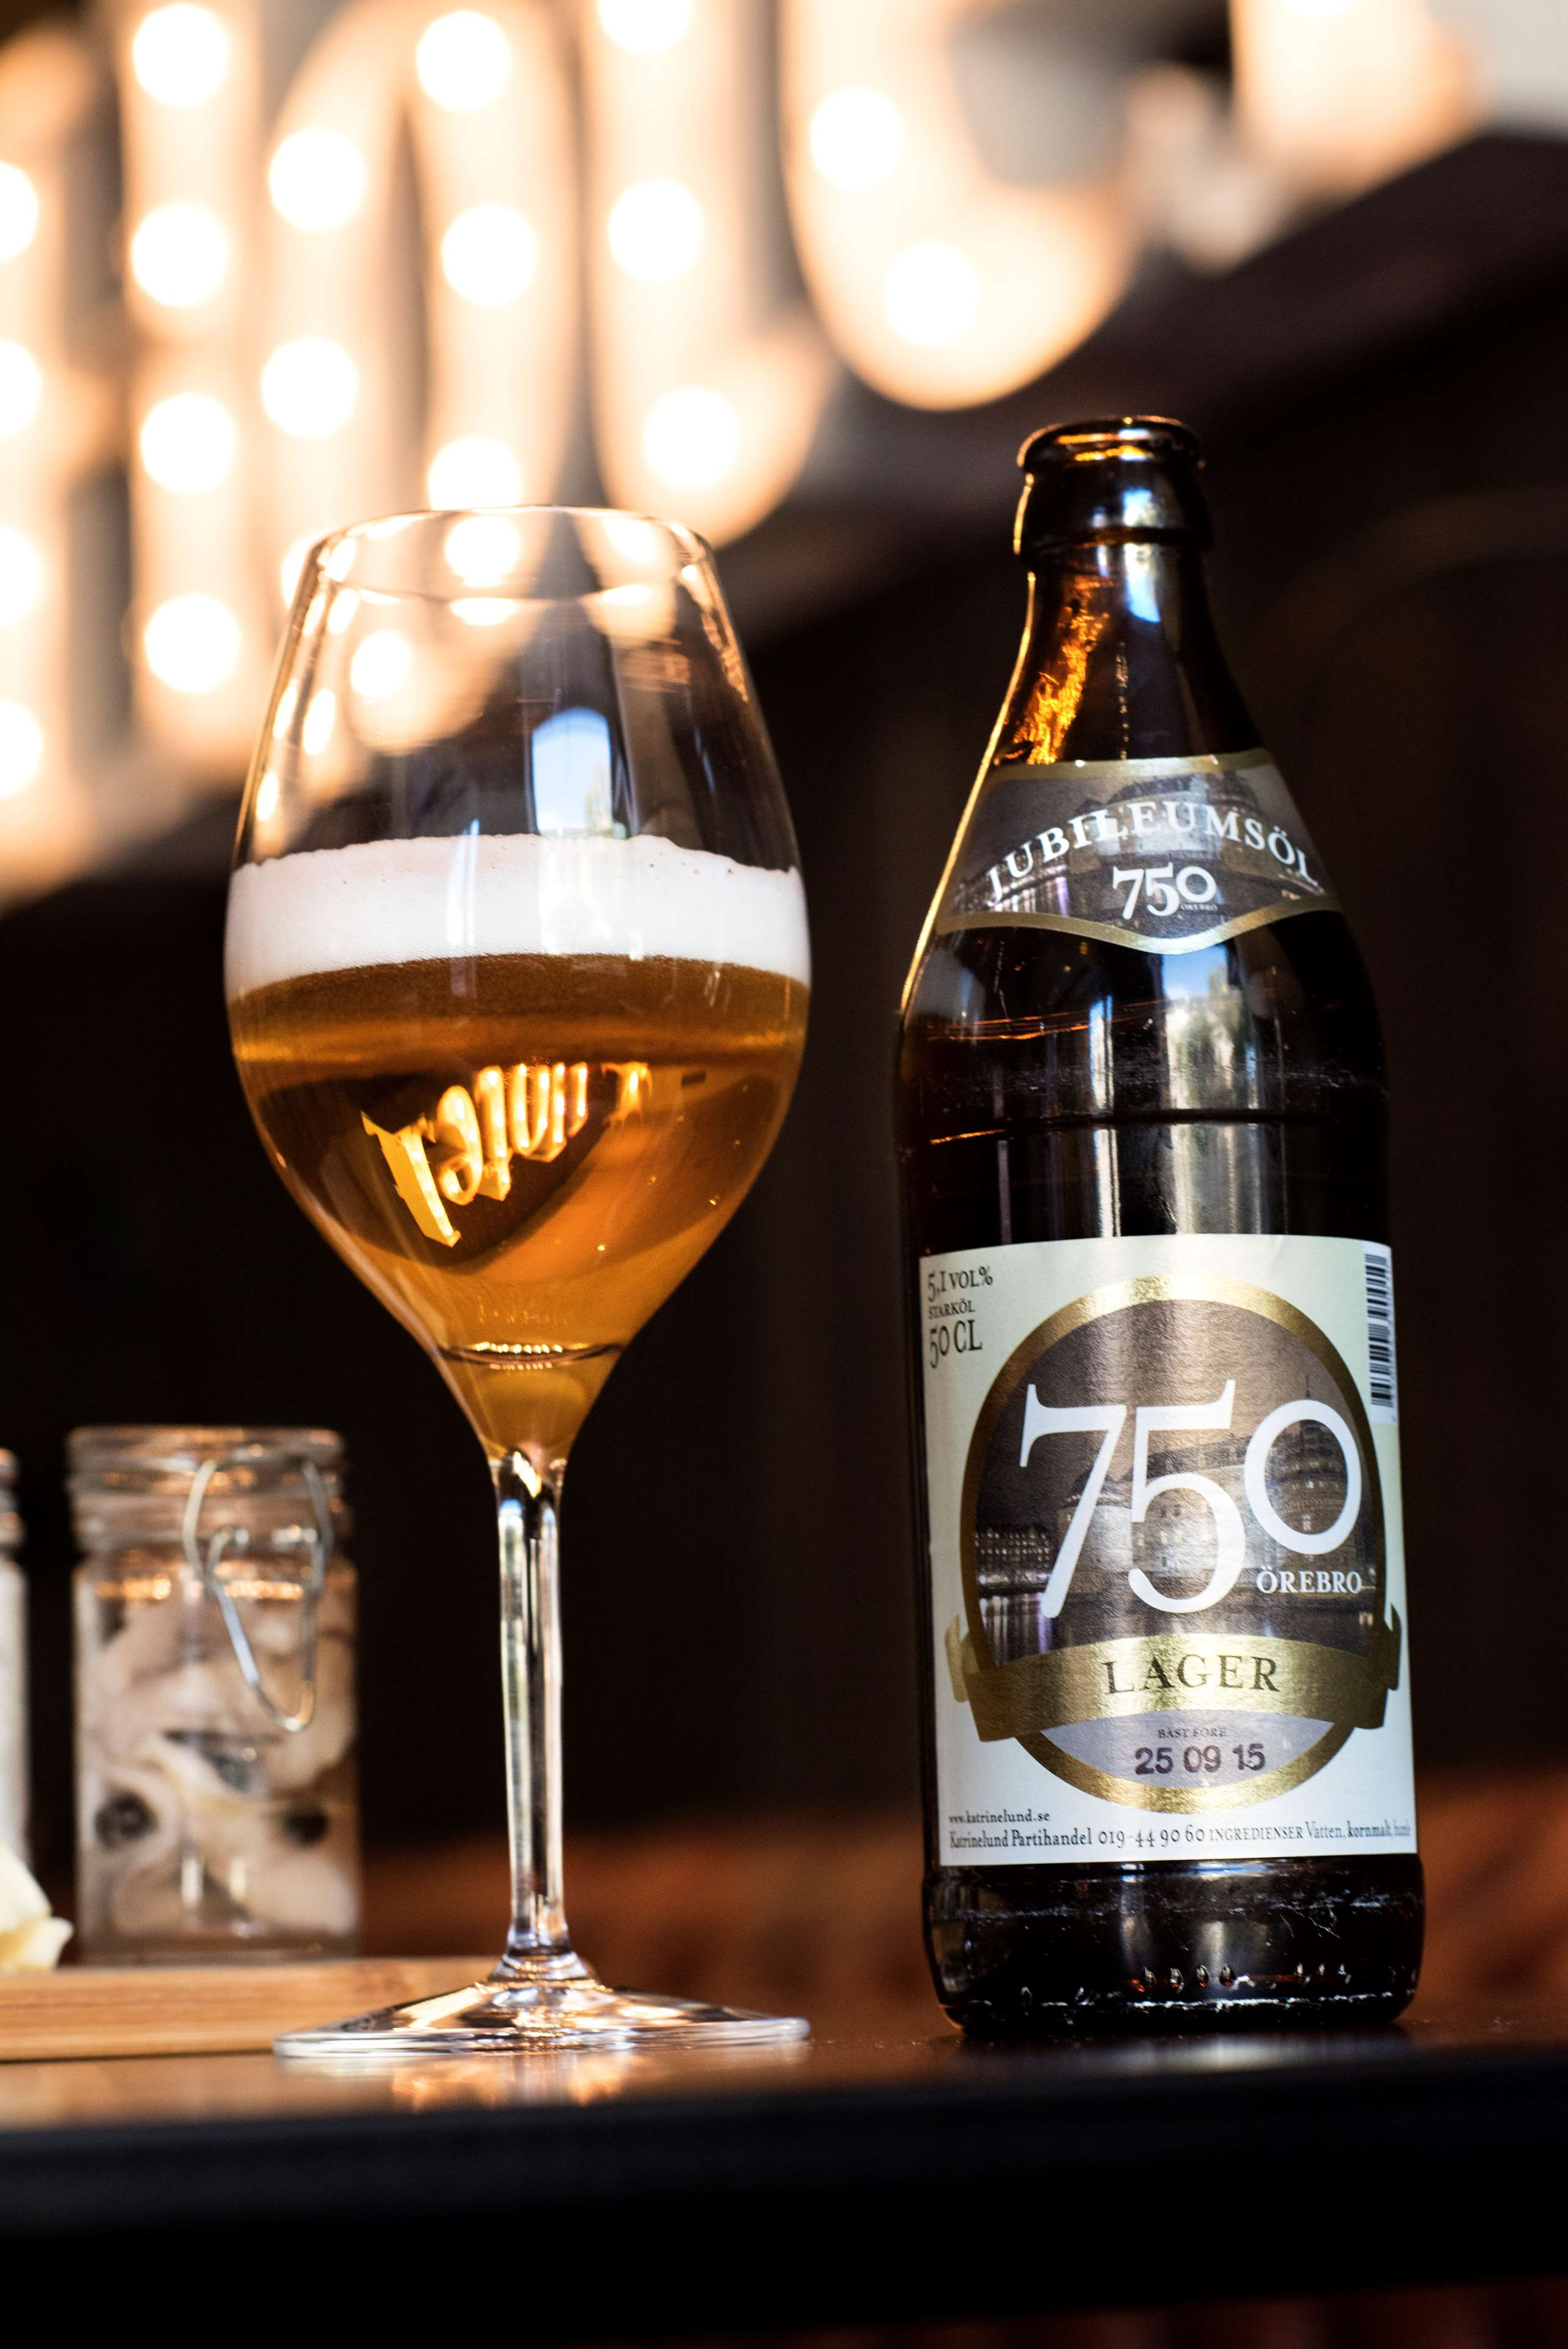 Winebar - Local Beer with local food